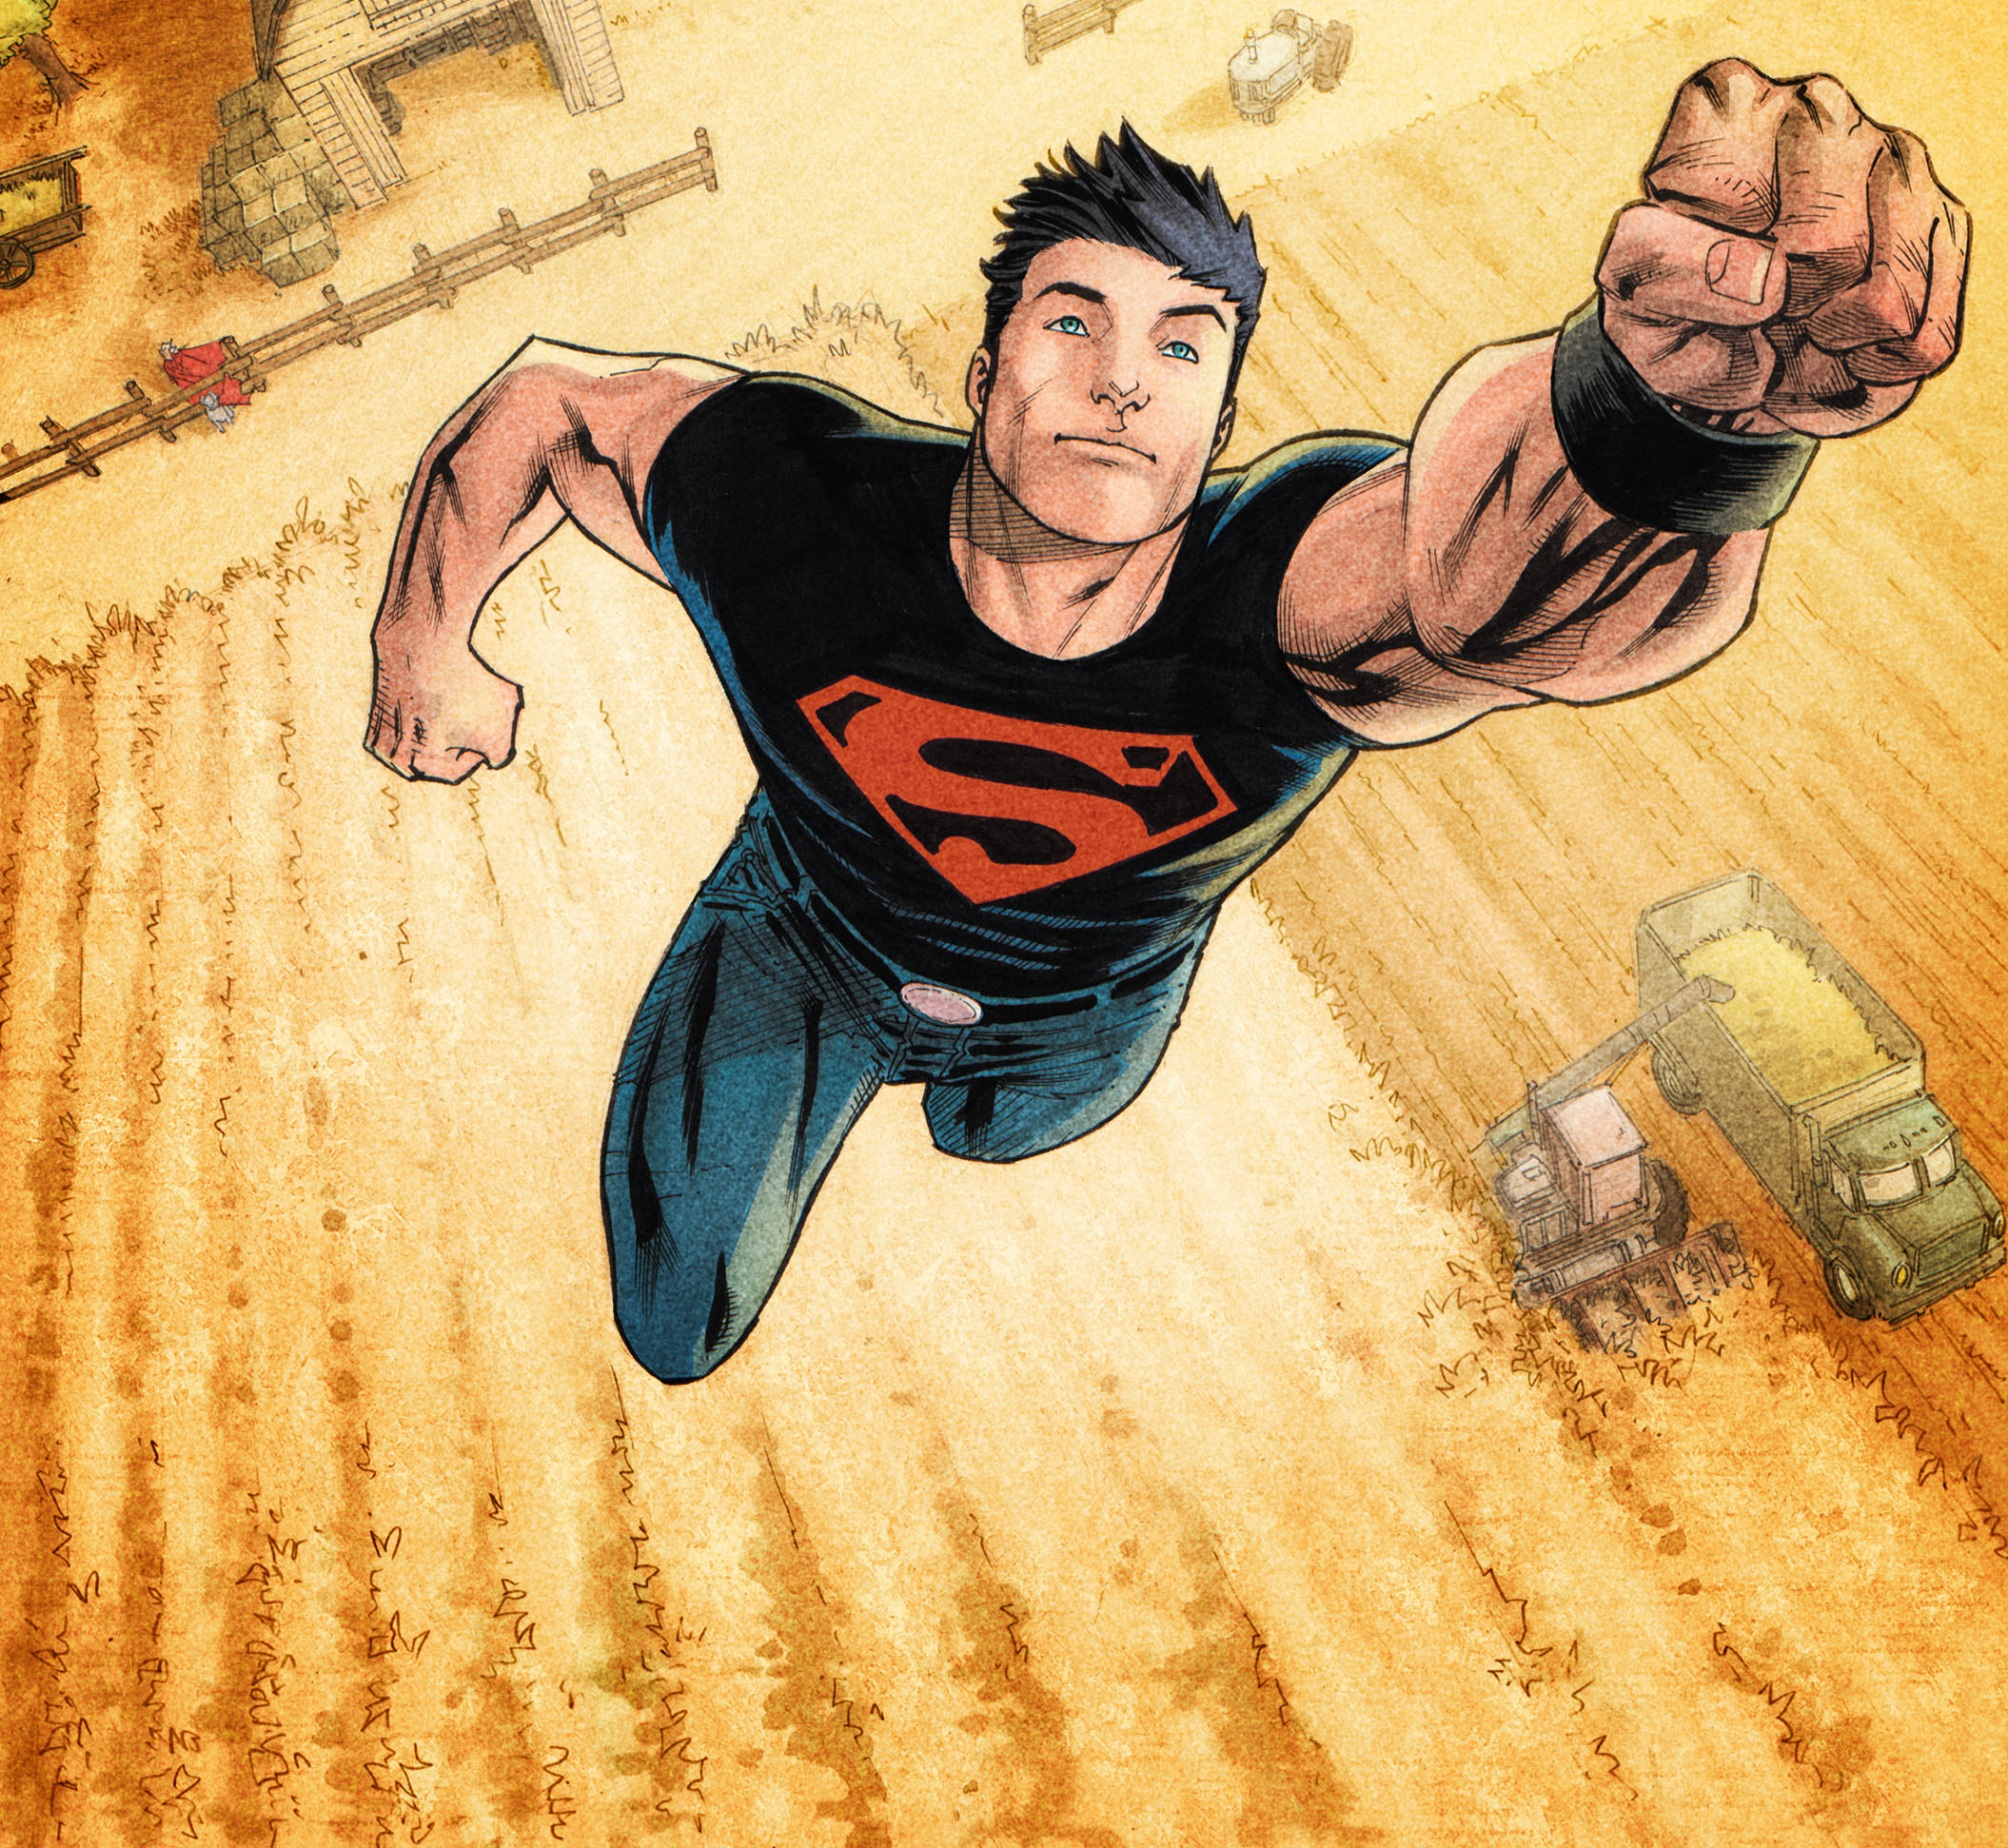 Dc S Titans Finds Its Superboy Joshua Orpin To Portray Conner Kent Deadline The gang is back to discuss episode 6 of dc universe's titans season 2, which features the debut of joshua orpin's conner kent, aka superboy. joshua orpin to portray conner kent